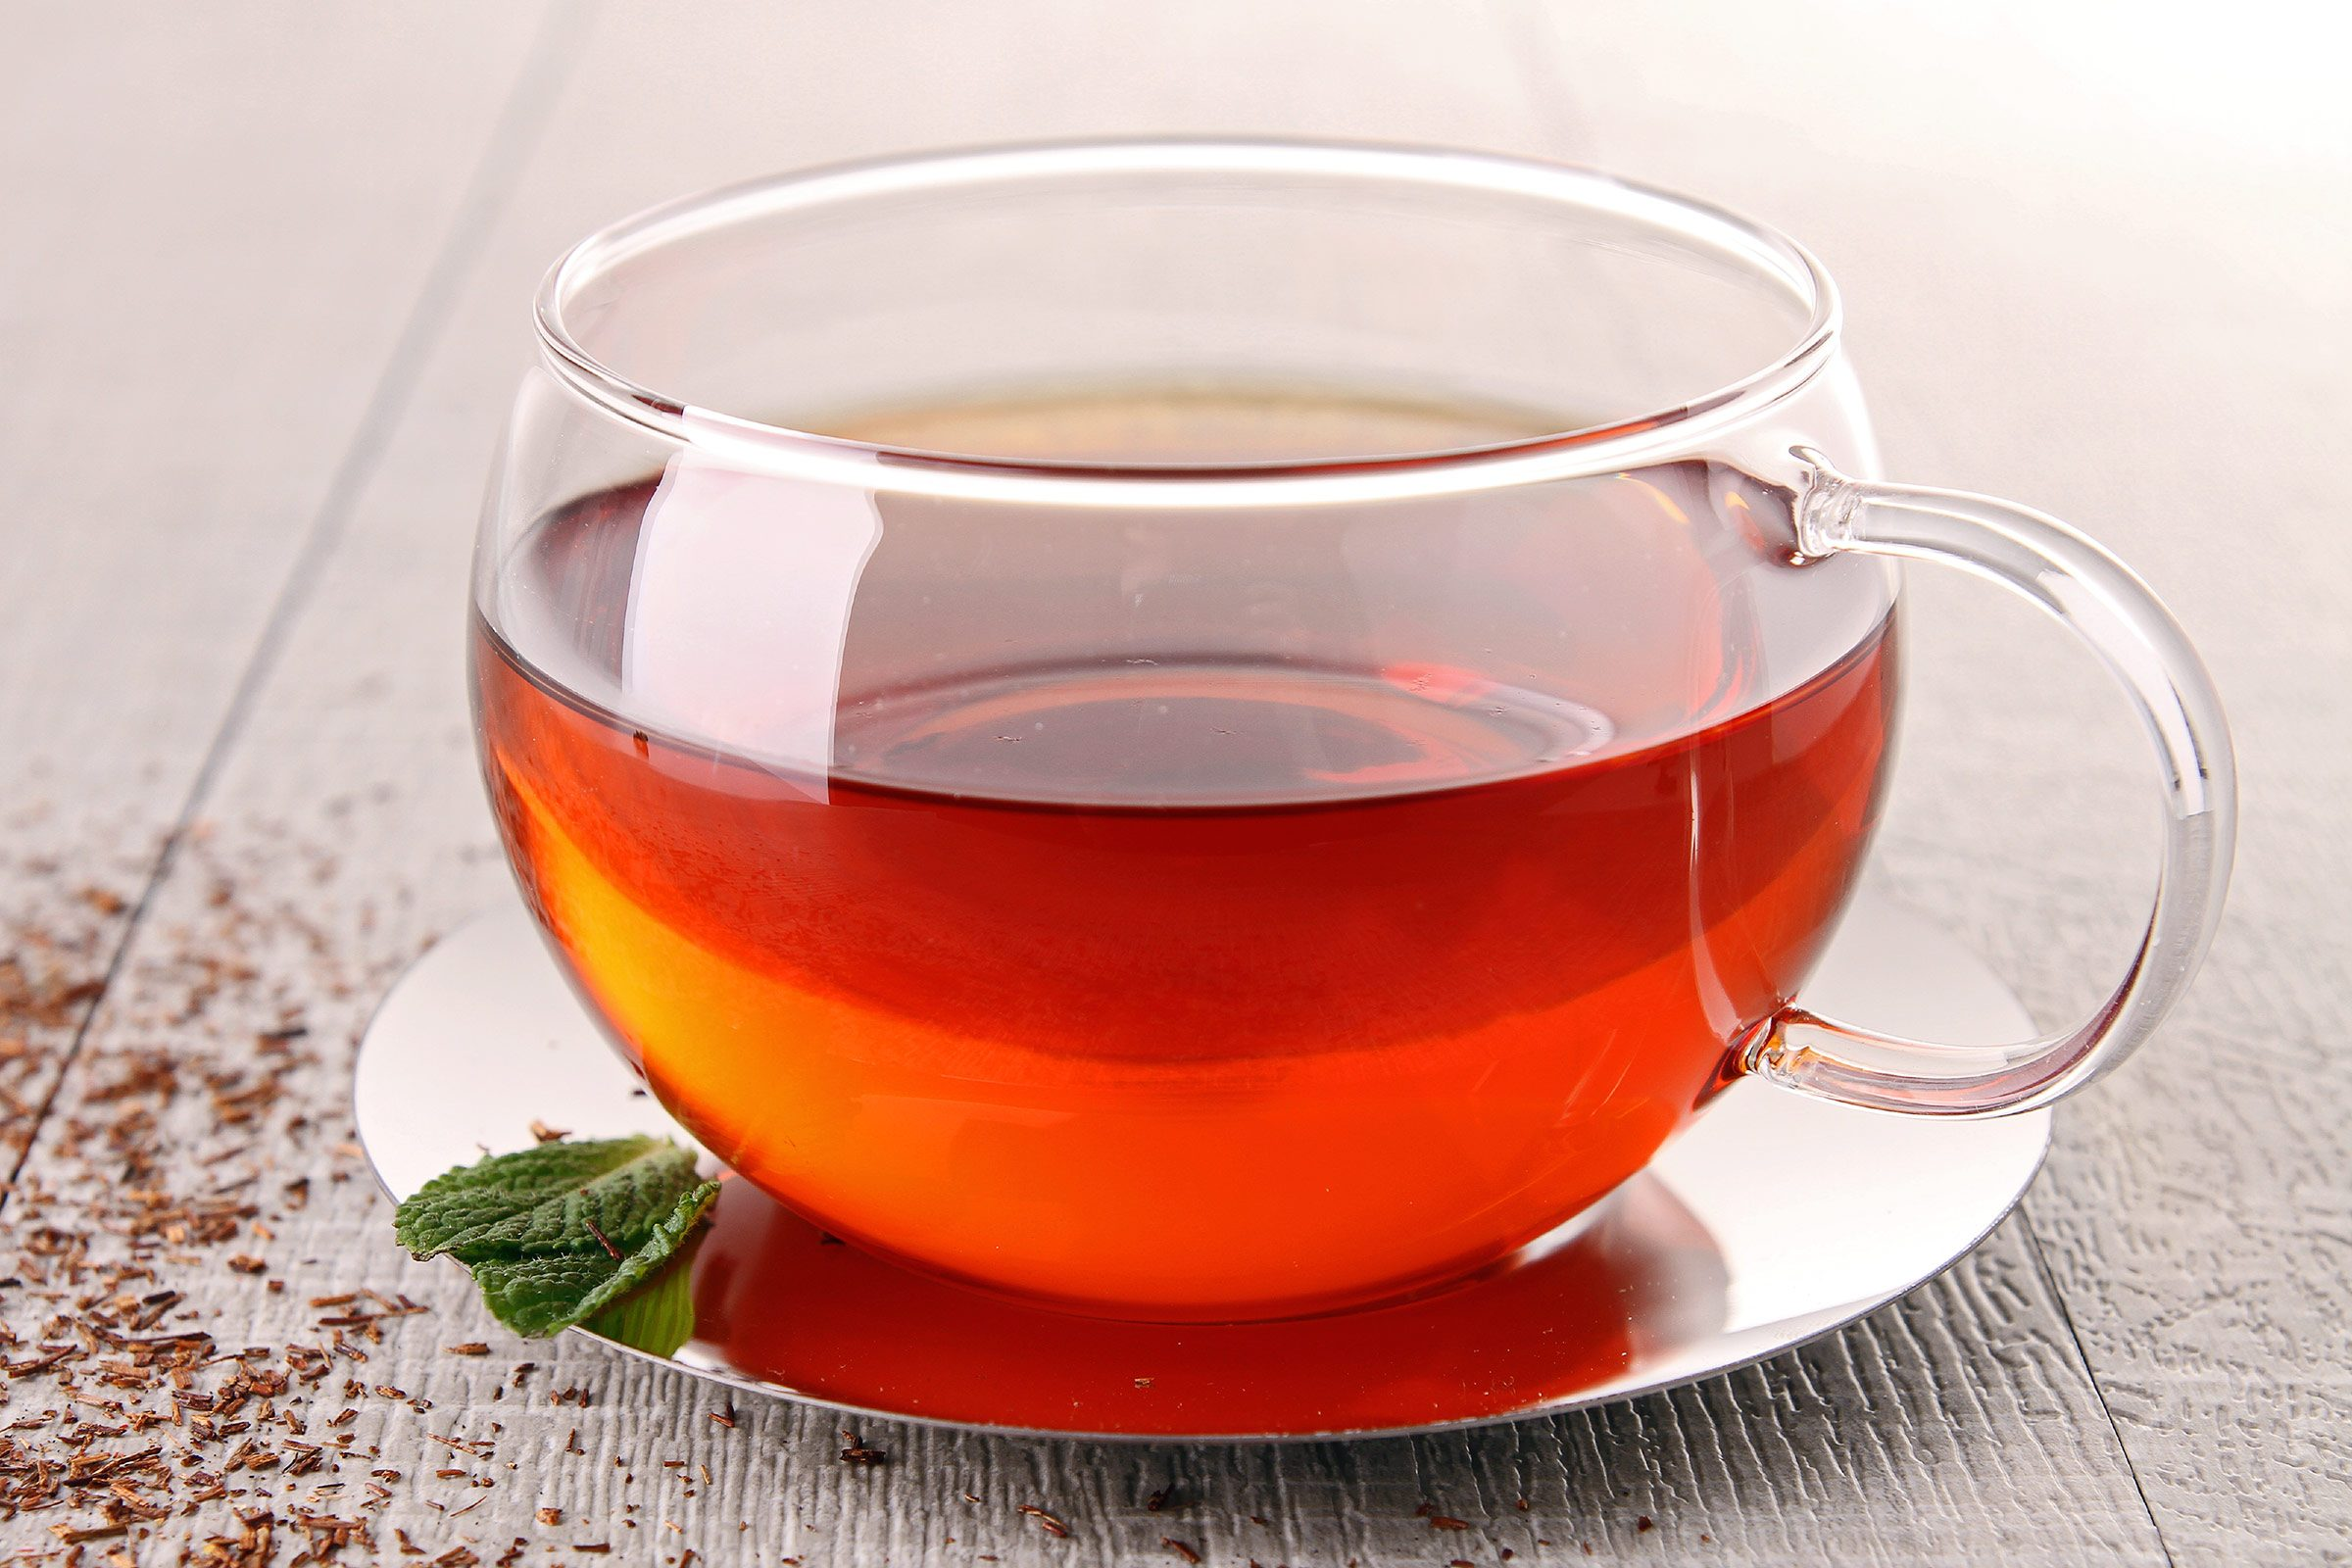 South Africa: Sip some rooibos tea